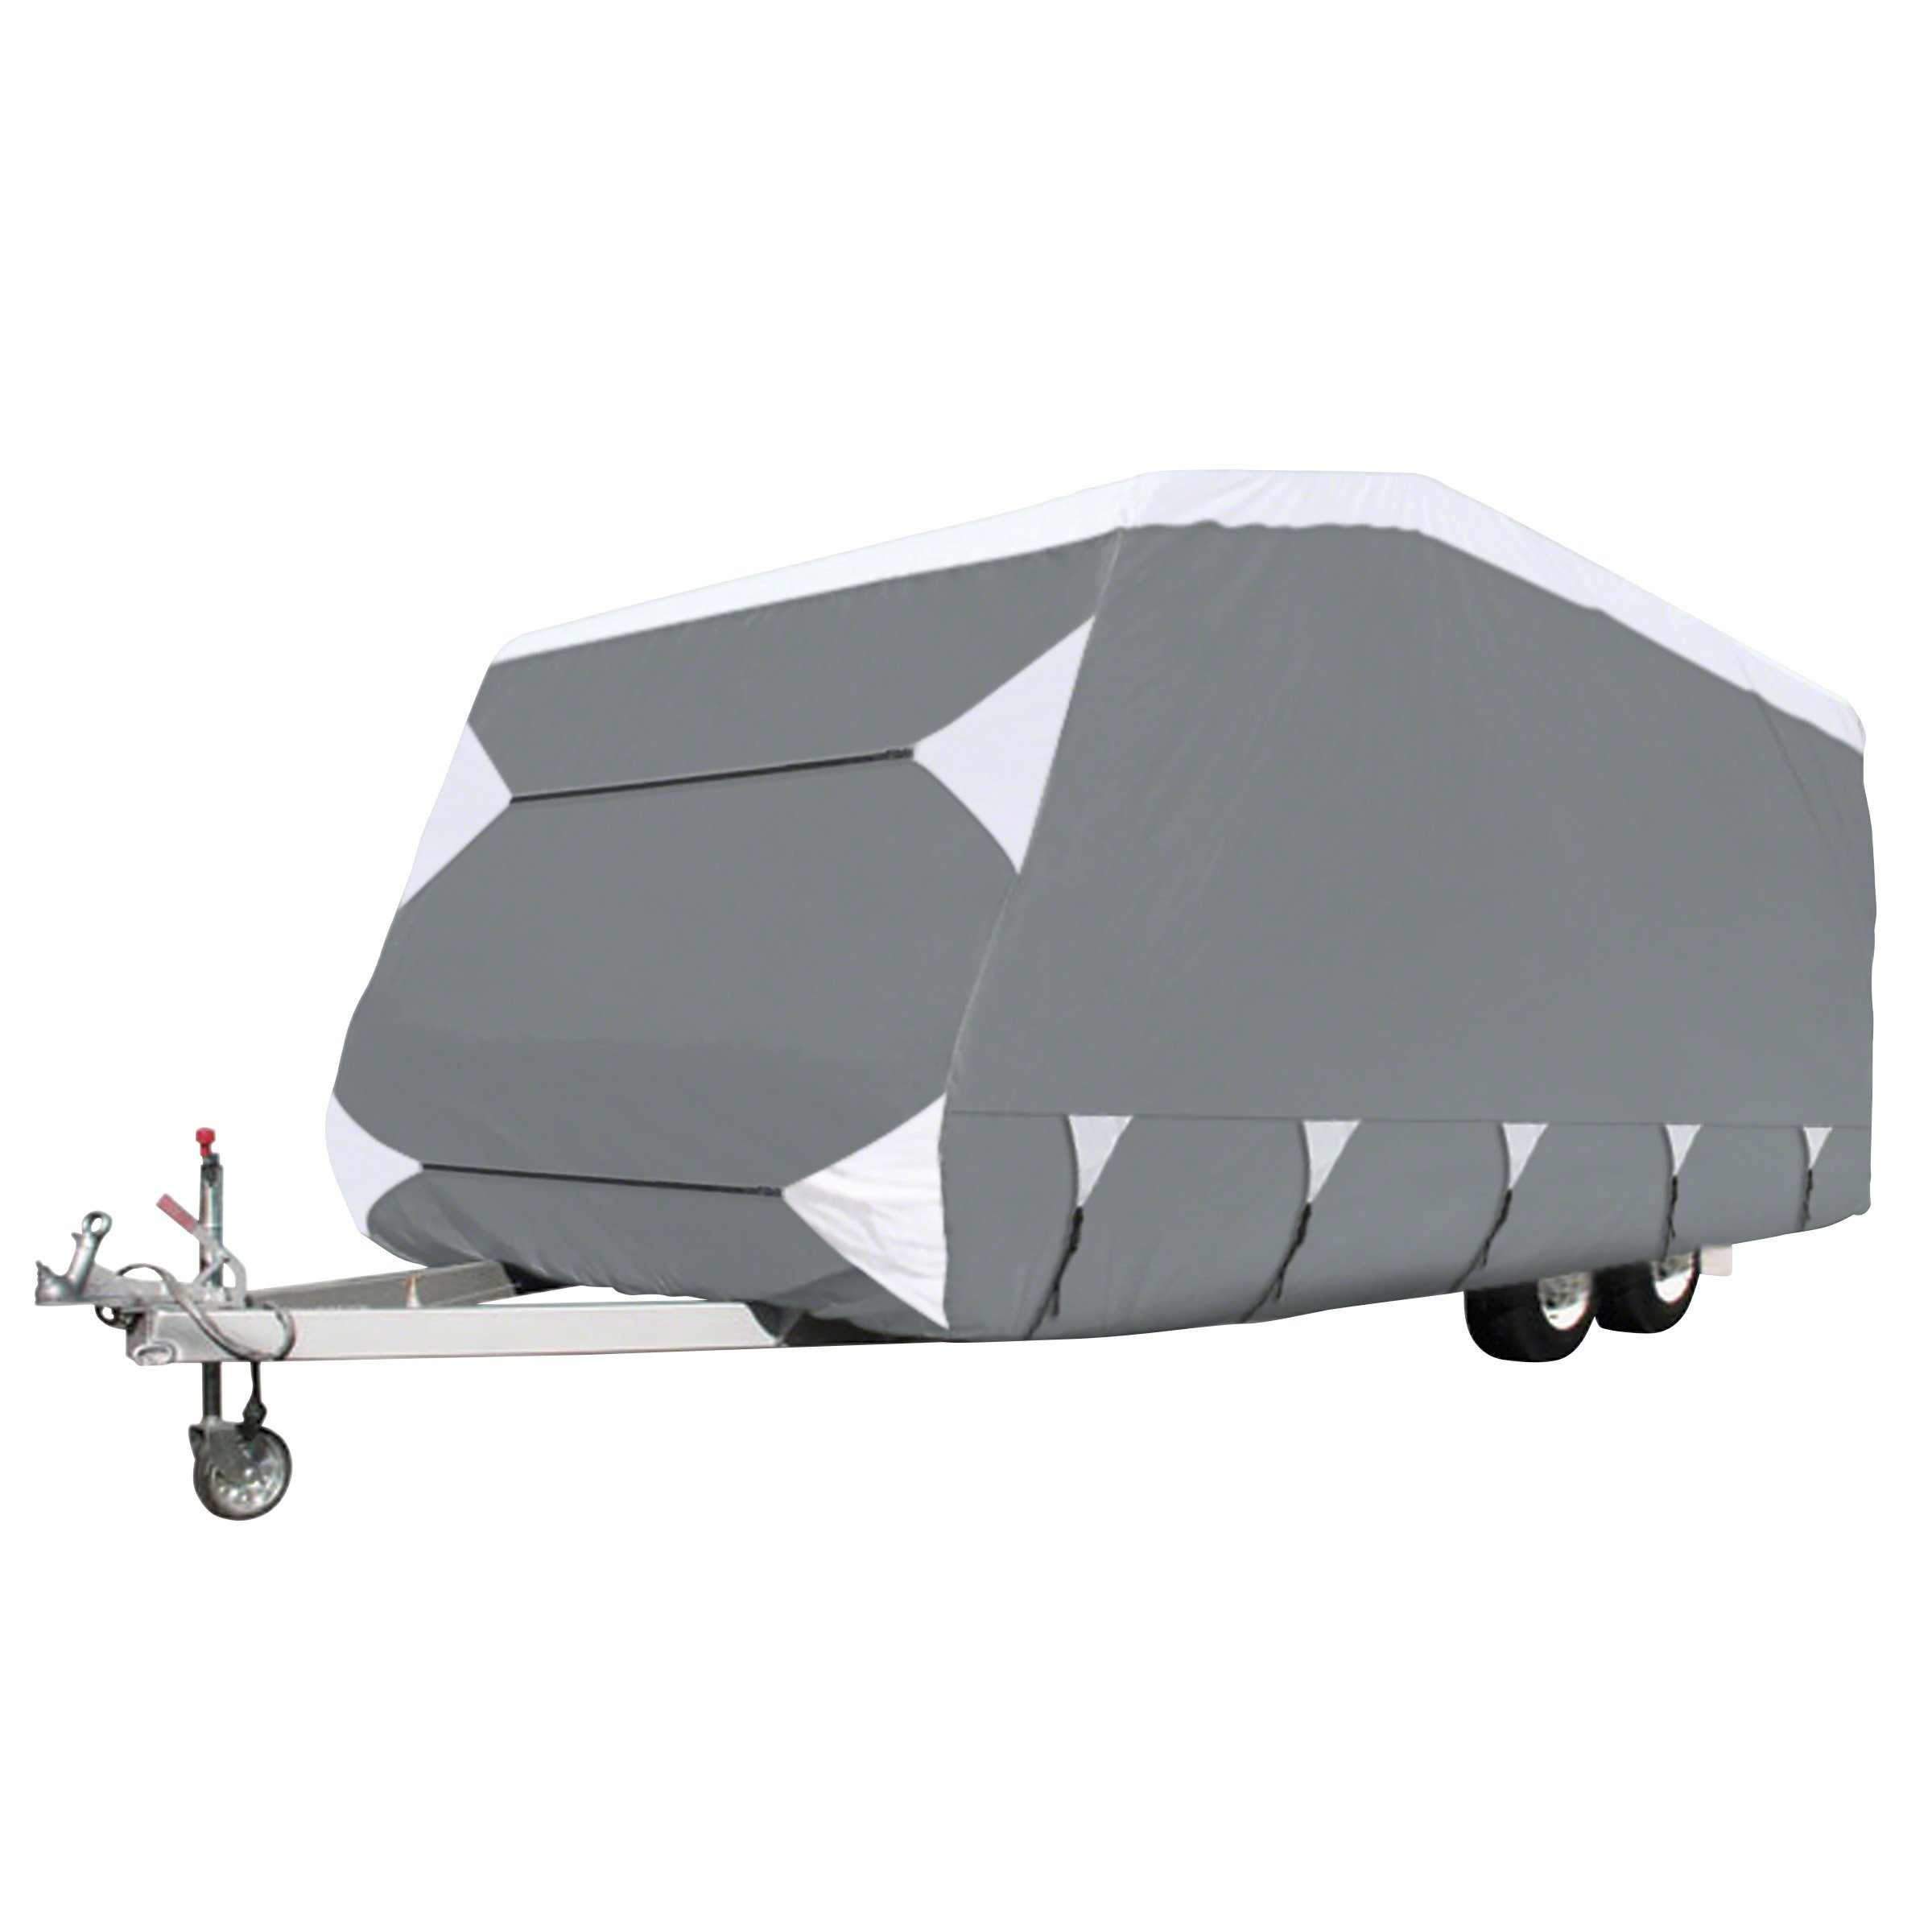 Classic Accessories PolyPro 3 RV Cover For 22-24' Caravan Trailers by Classic Accessories (Image #5)